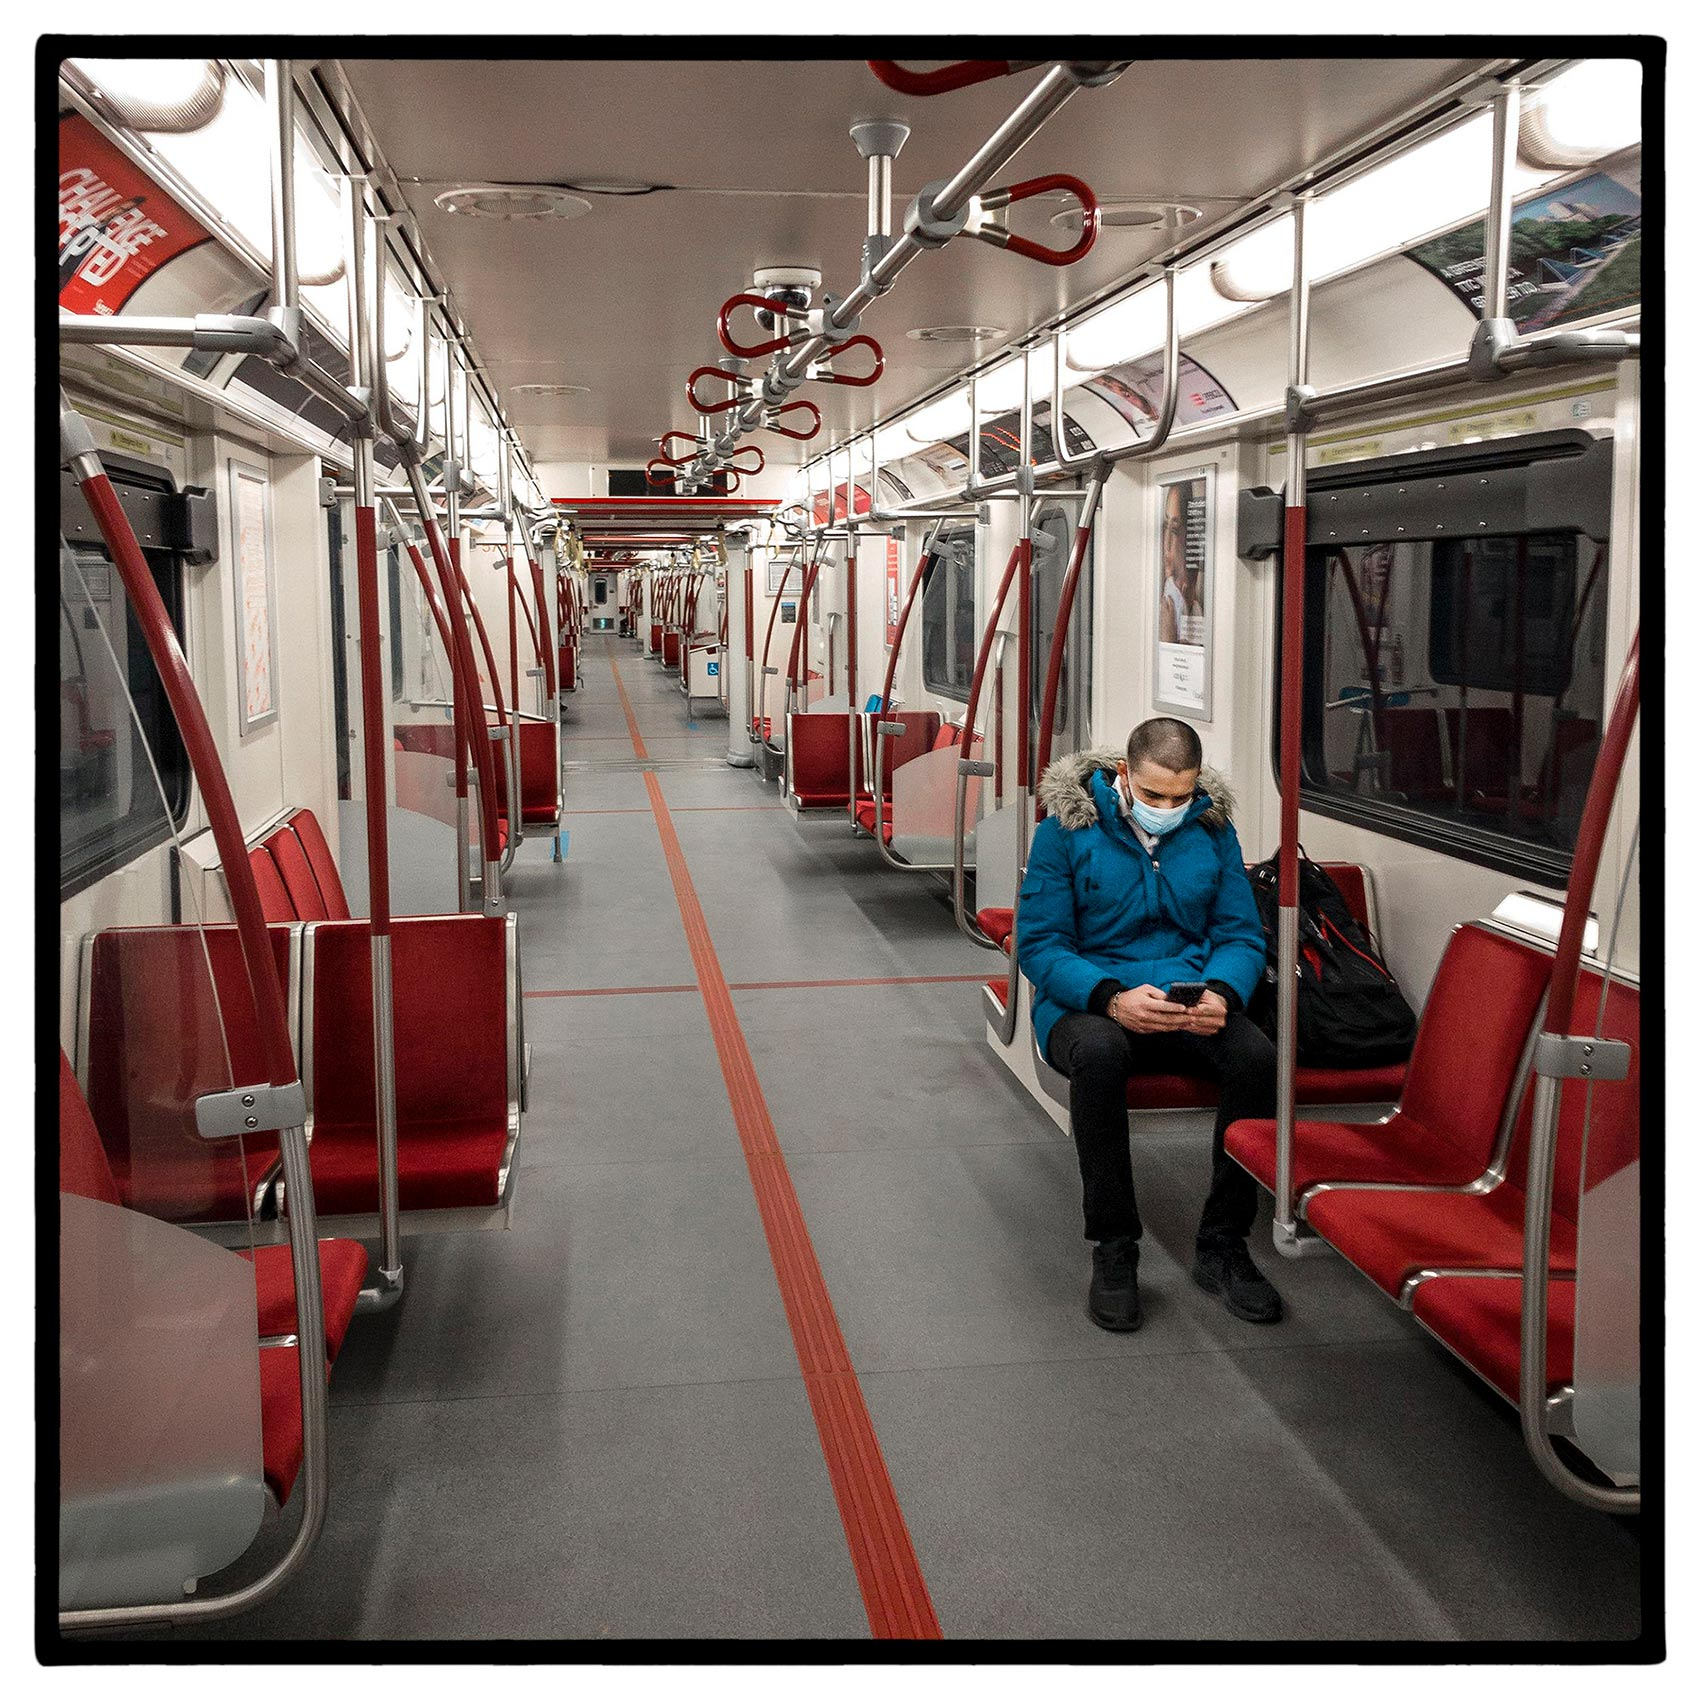 a-passenger-sitting-on-an-empty-subway-car-during-the-pandemic-in-toronto